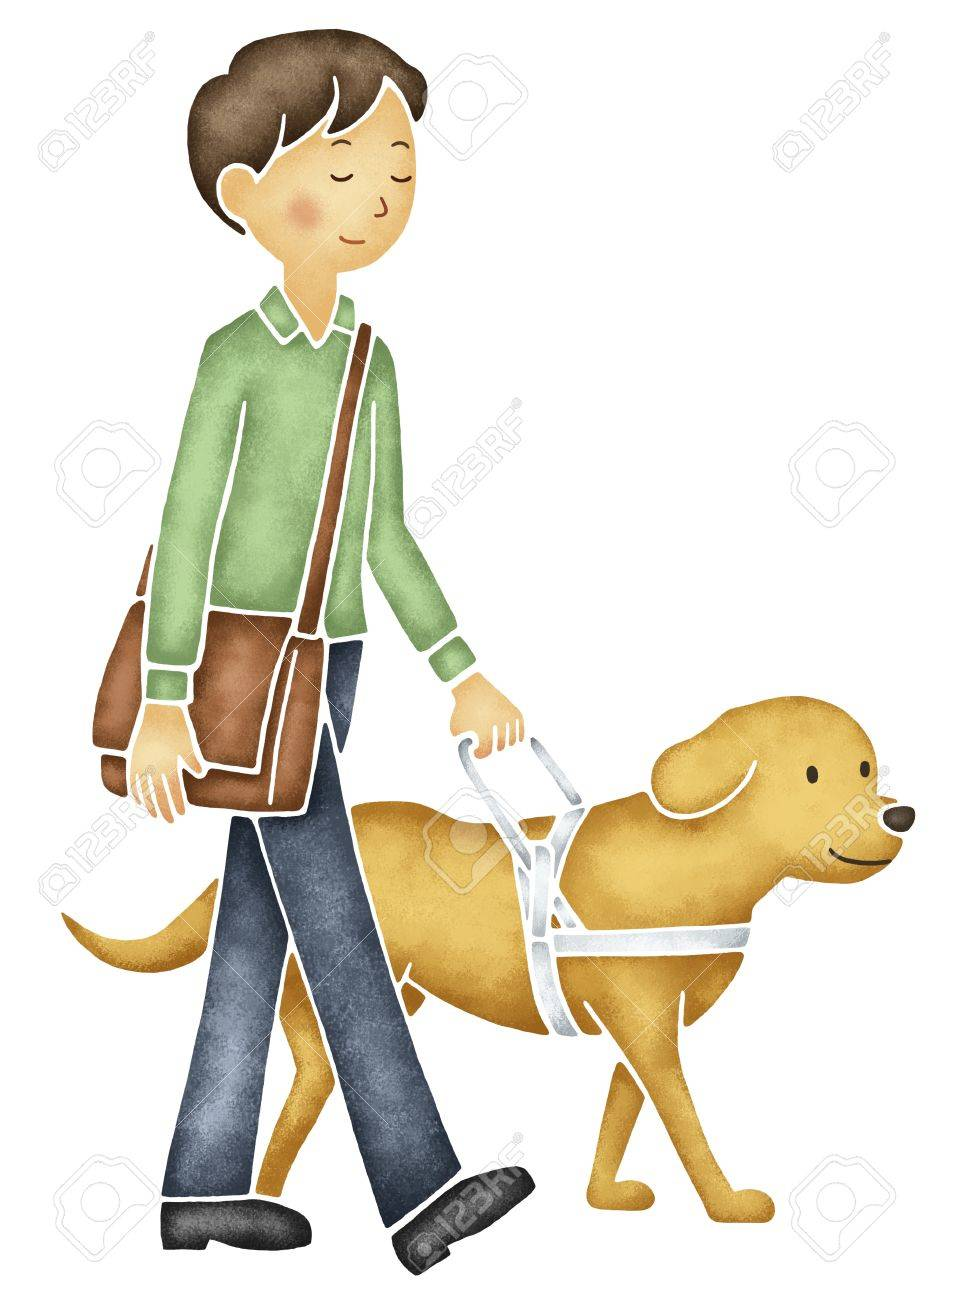 An animated picture of a blind young man with a guide dog